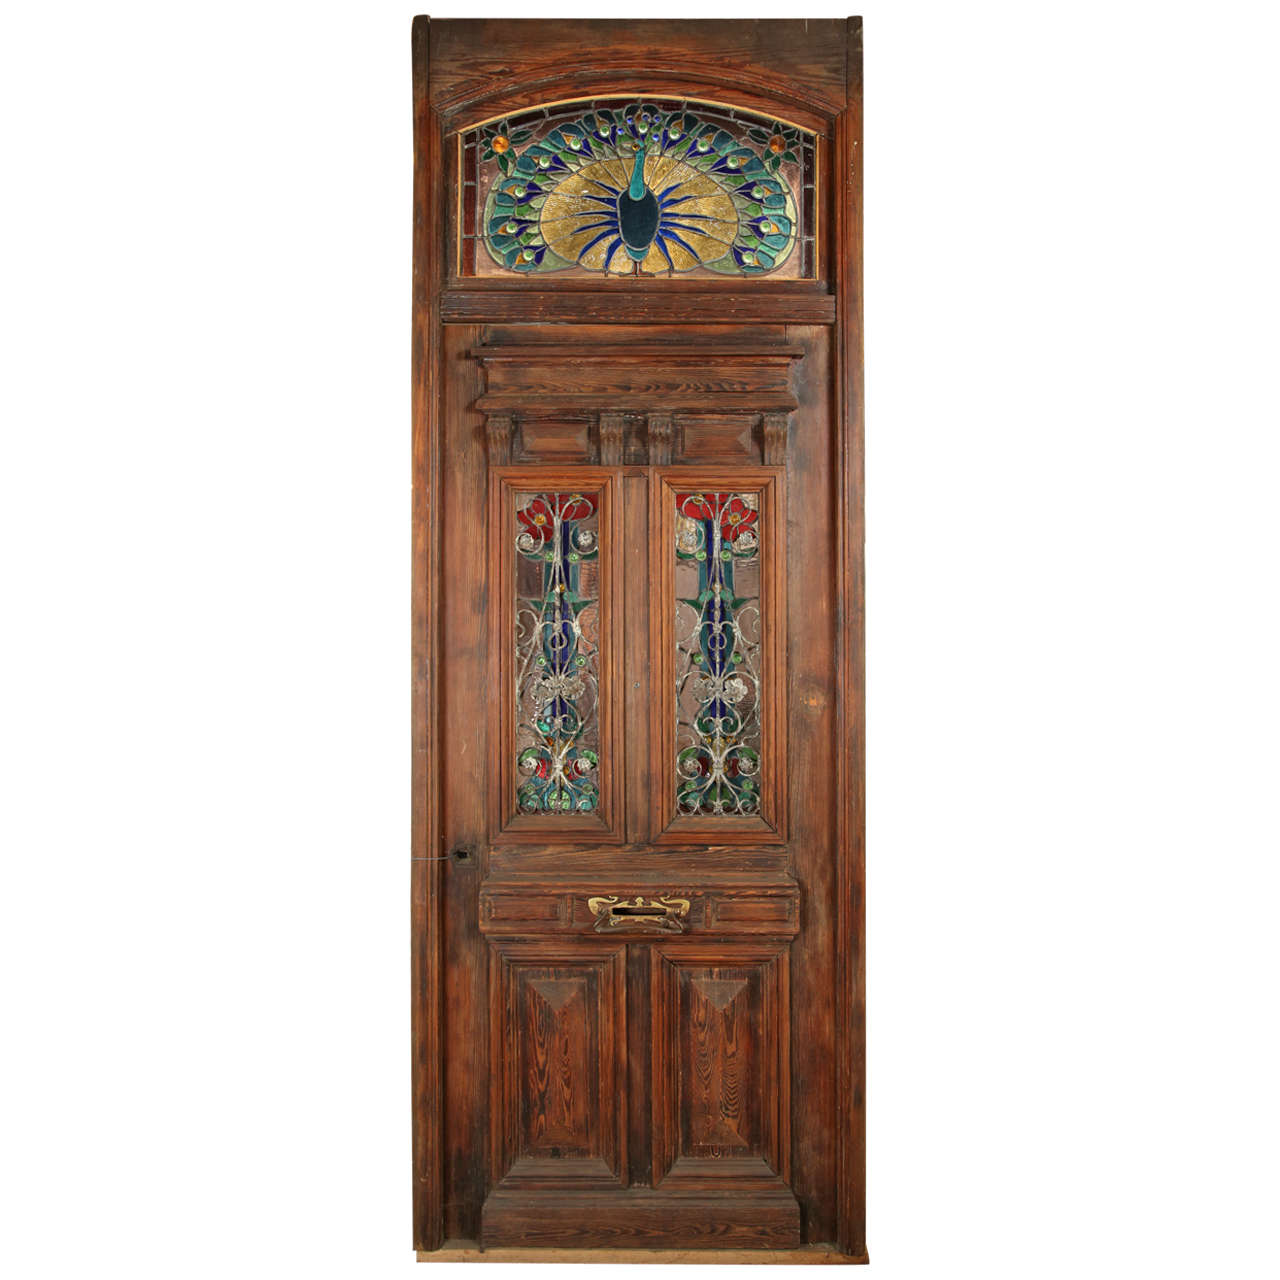 1280 #6D412B Heart Pine Entry Door With Stained Glass Windows; Peacock Transom At  image Stained Glass Entry Doors 41831280